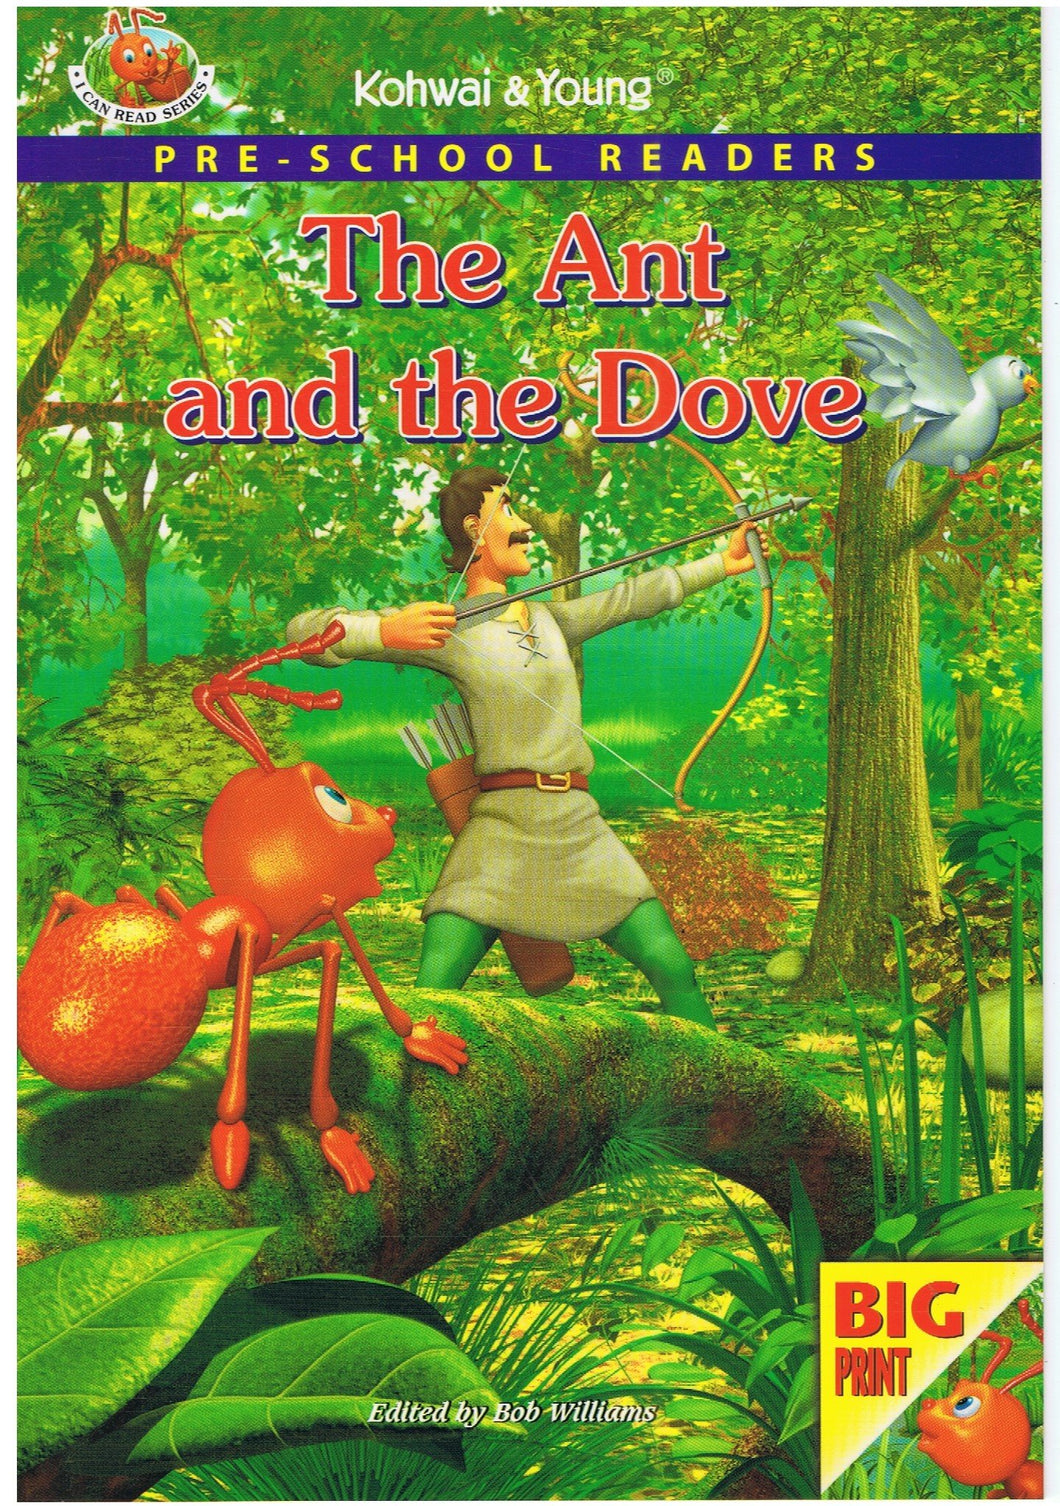 Kohwai & Young-Pre-School Readers: The Ant And The Dove-9789831911976-BukuDBP.com